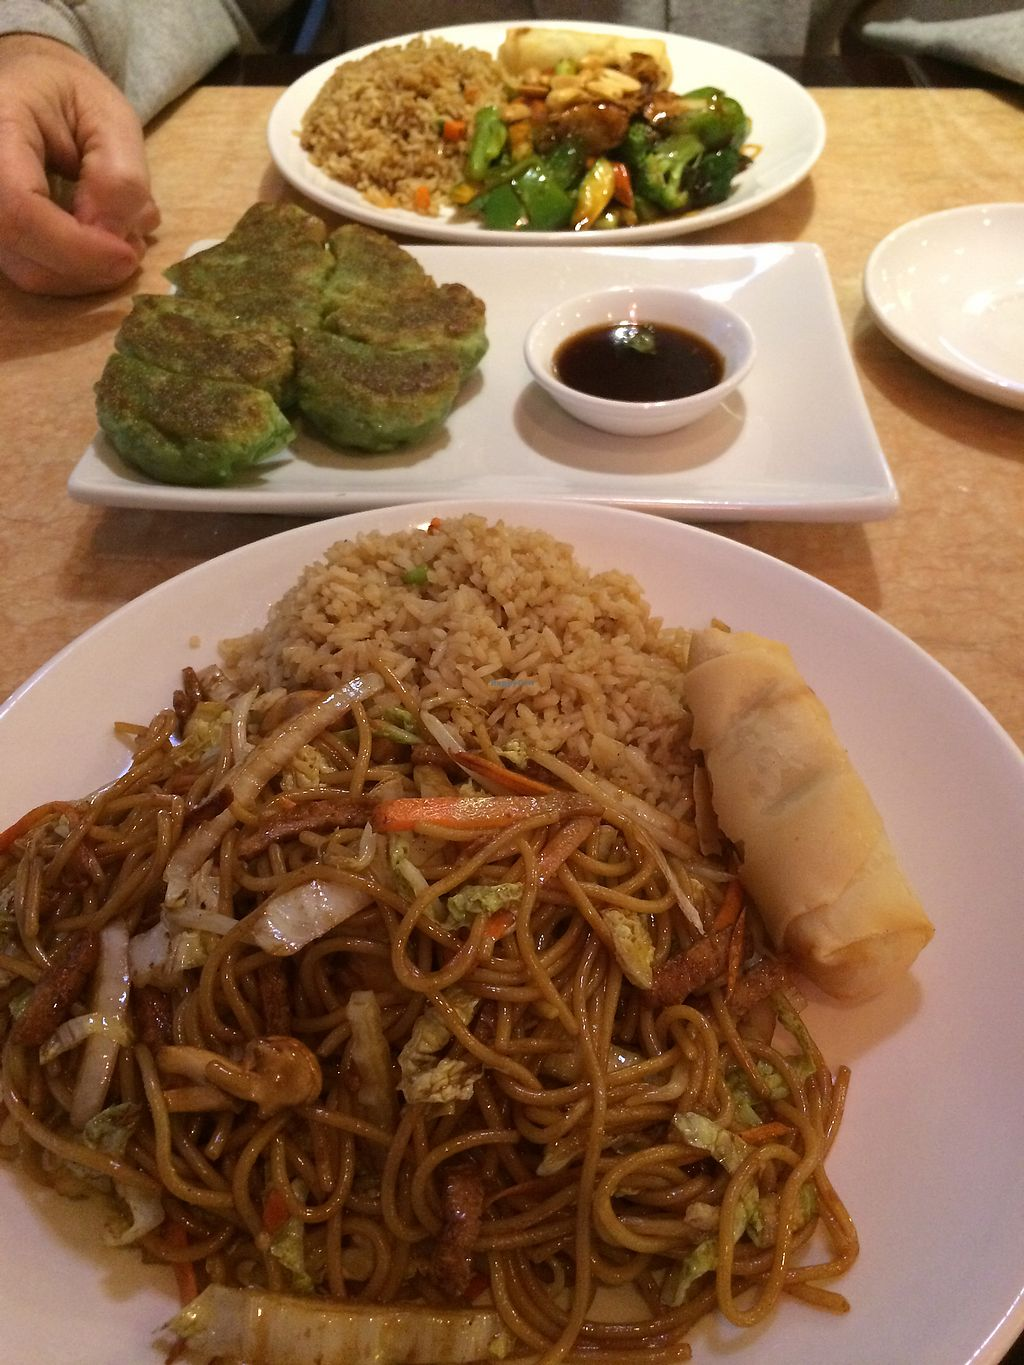 """Photo of Ma Ma Wok  by <a href=""""/members/profile/TomMare"""">TomMare</a> <br/>Lo Mein and Kung Pao  <br/> November 17, 2017  - <a href='/contact/abuse/image/98709/326549'>Report</a>"""